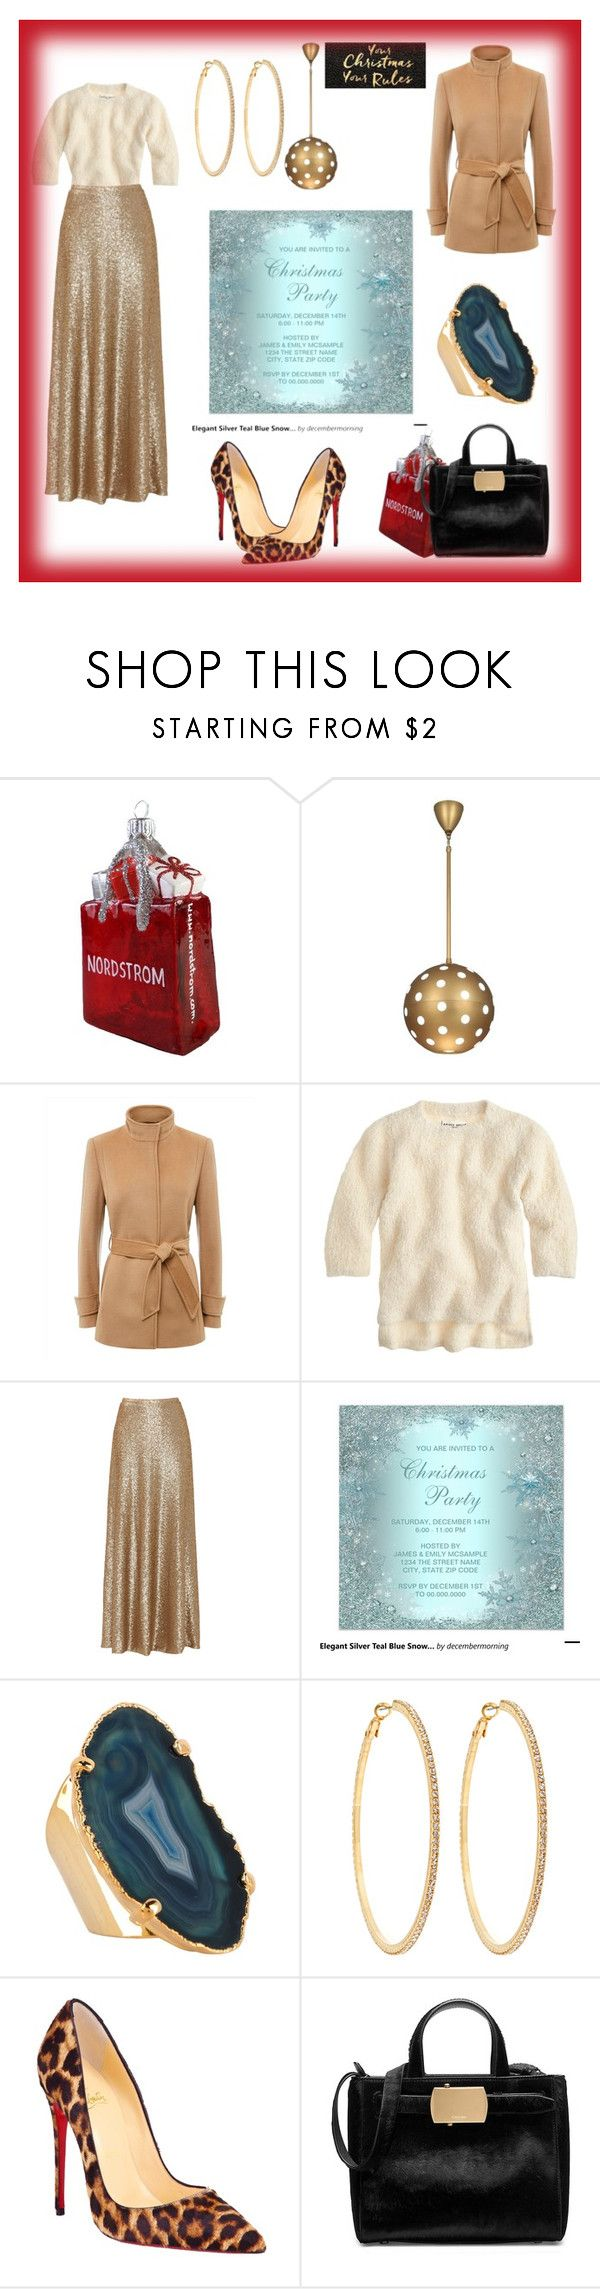 """Happy Holiday, Merry Christmas"" by sade-aladejana-lewis on Polyvore featuring Nordstrom, House of Fraser, Robert Abbey, Jaeger, Apiece Apart, Slate & Willow, Valerie Nahmani Designs, Roberta Chiarella, Christian Louboutin and Calvin Klein"